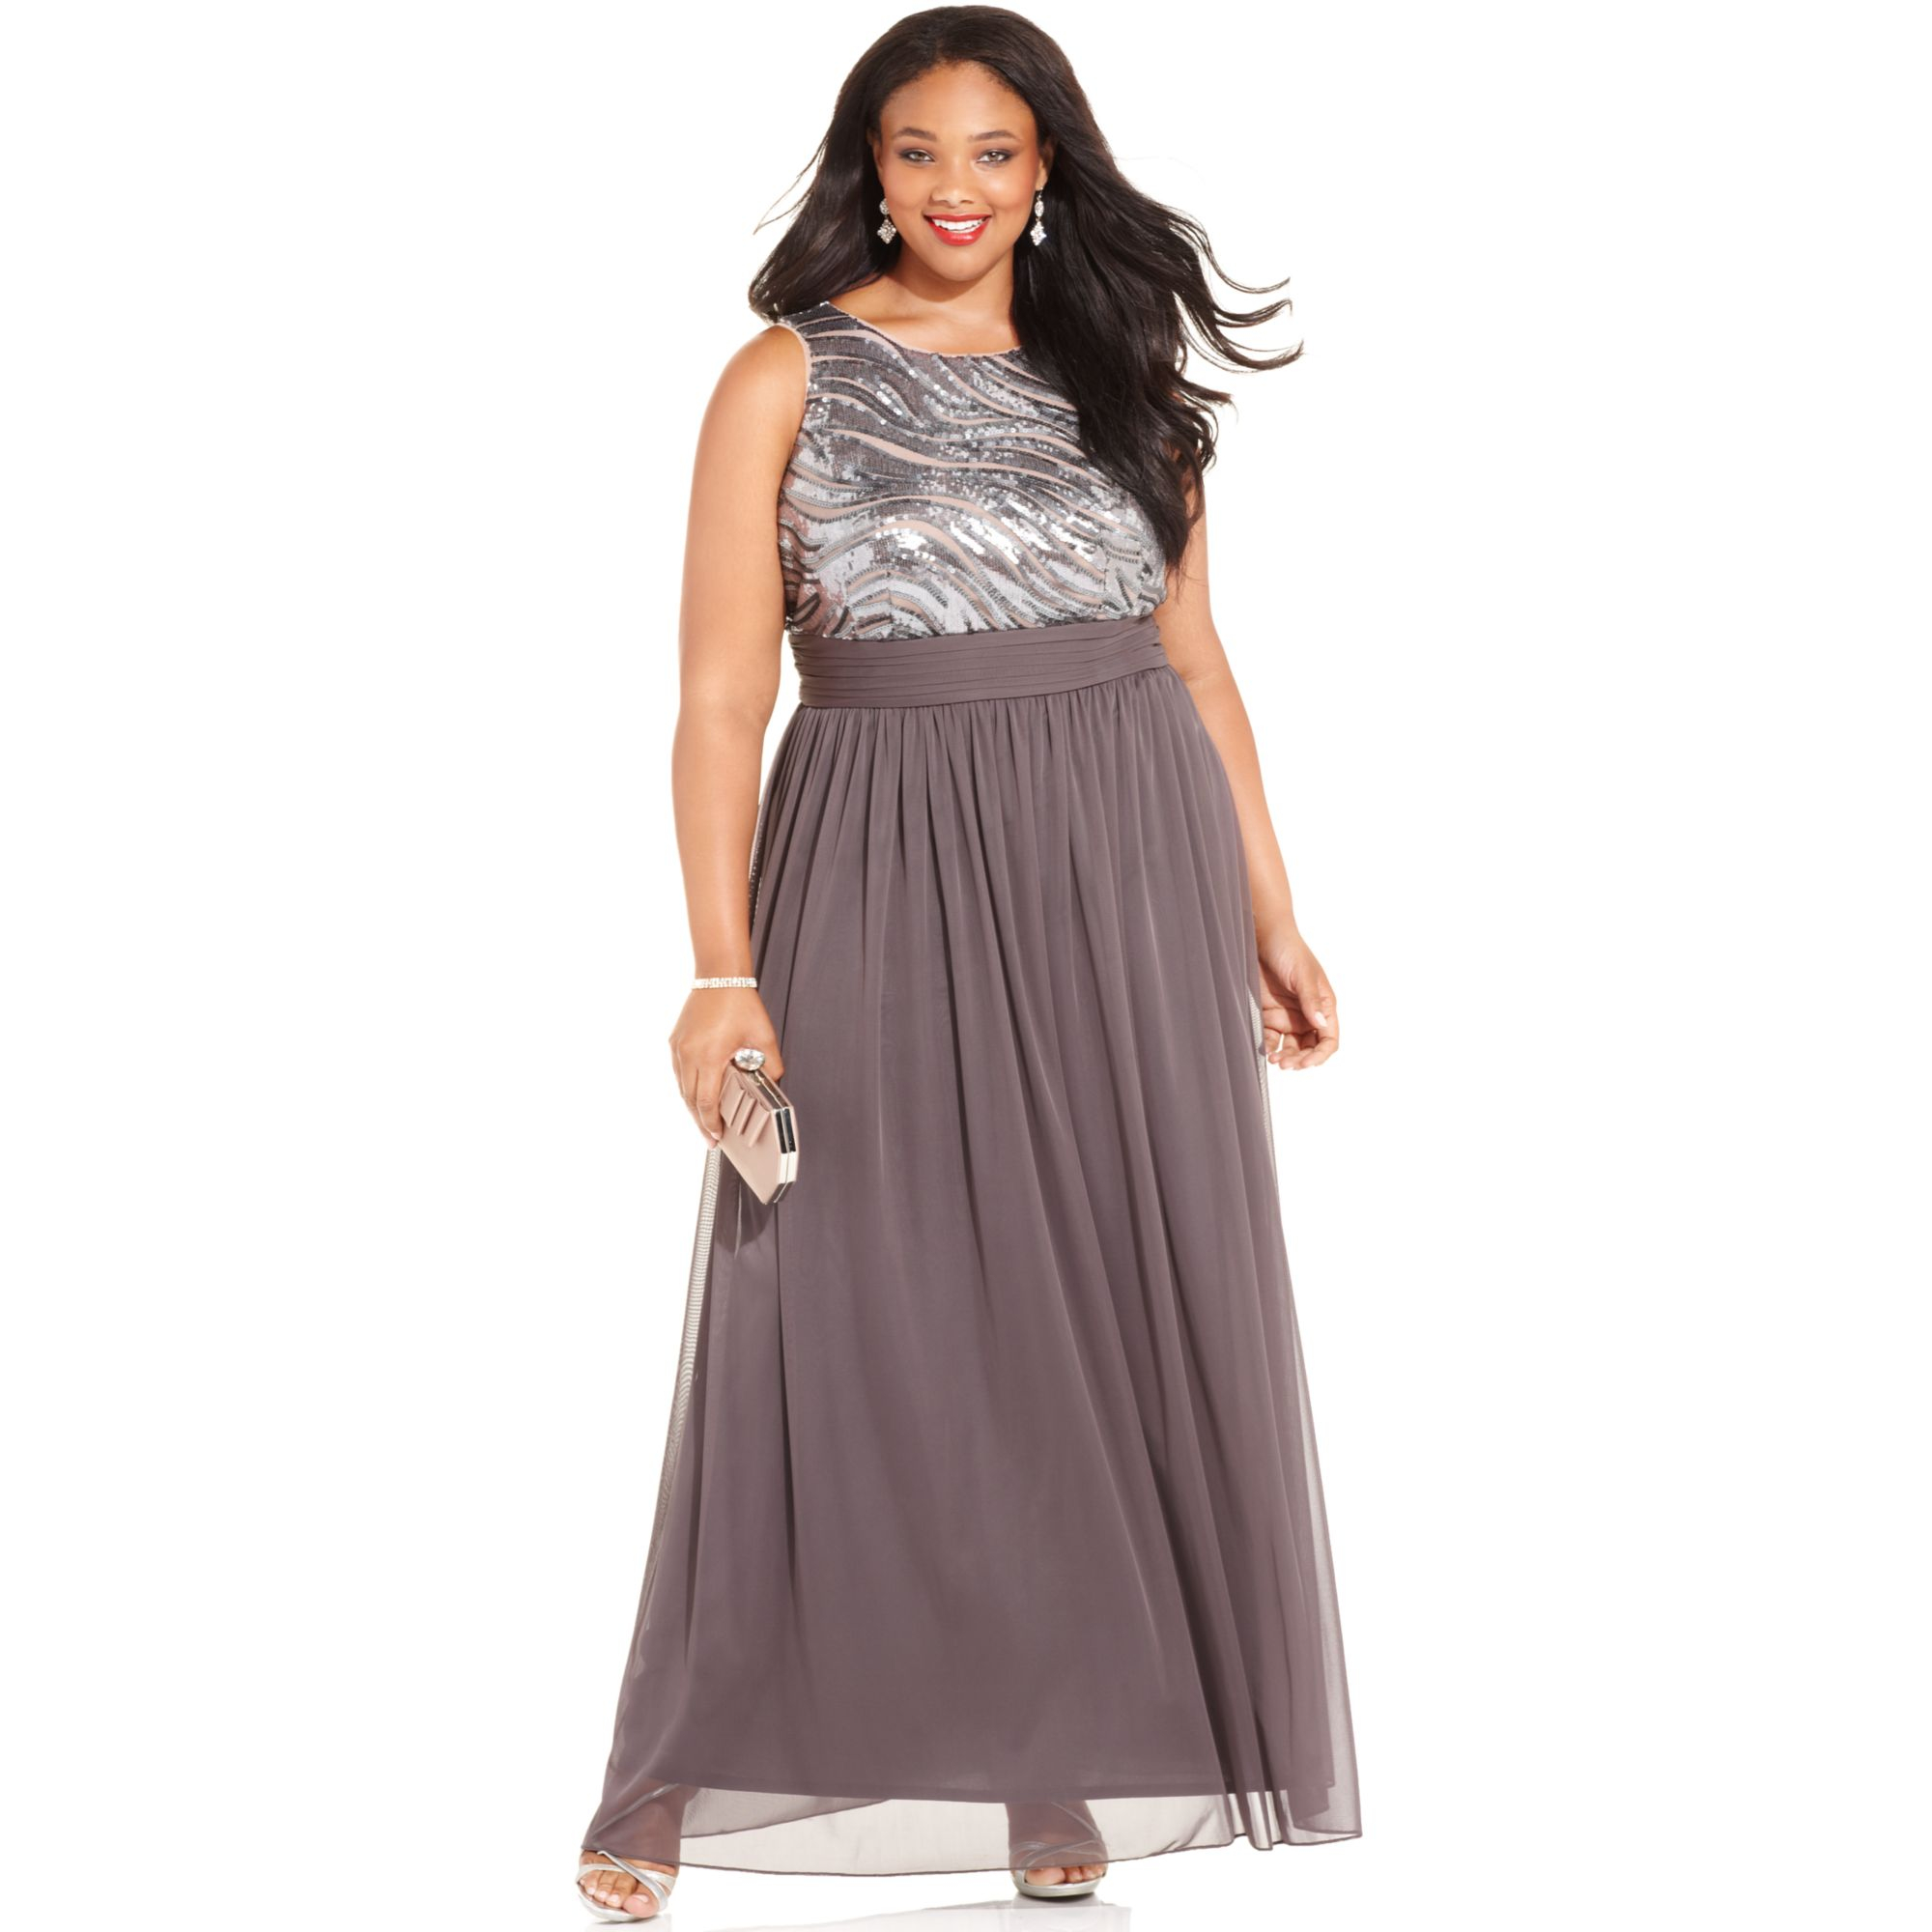 Betsy And Adam Plus Size Formal Dresses - The Best Style ...